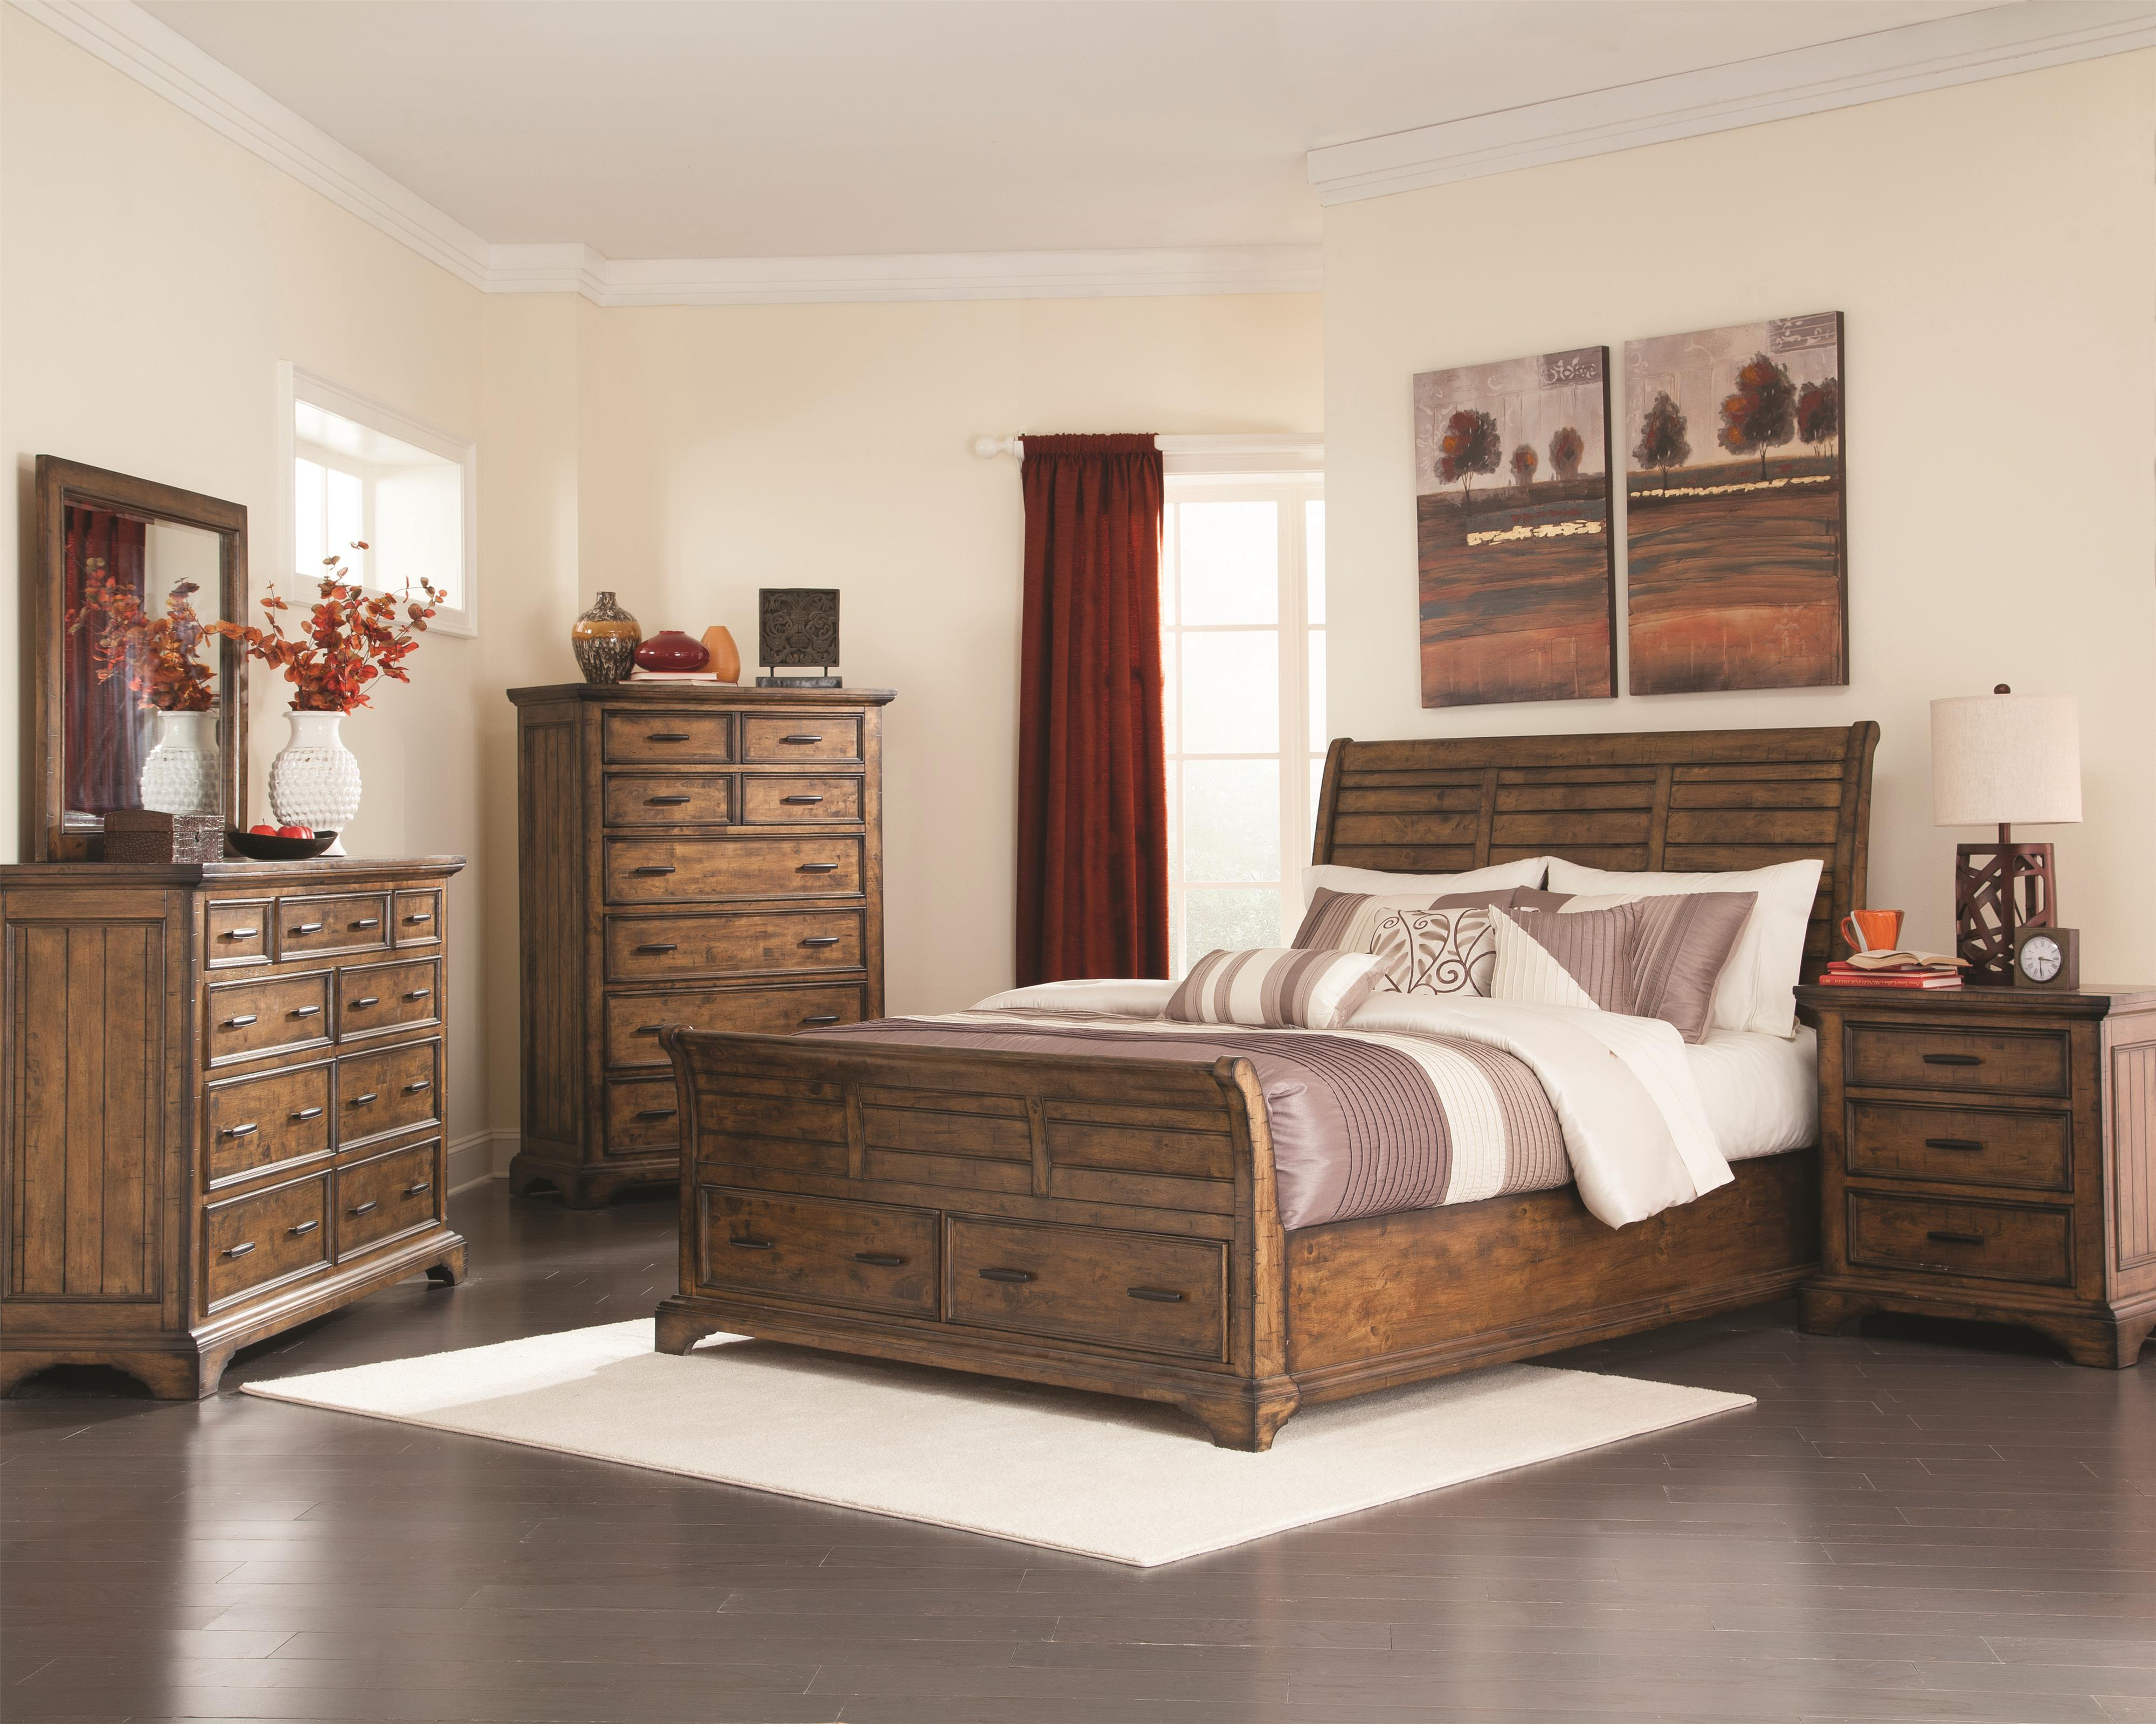 Coaster Elk Grove King Bedroom Group - Item Number: 20389 K Bedroom Group 1